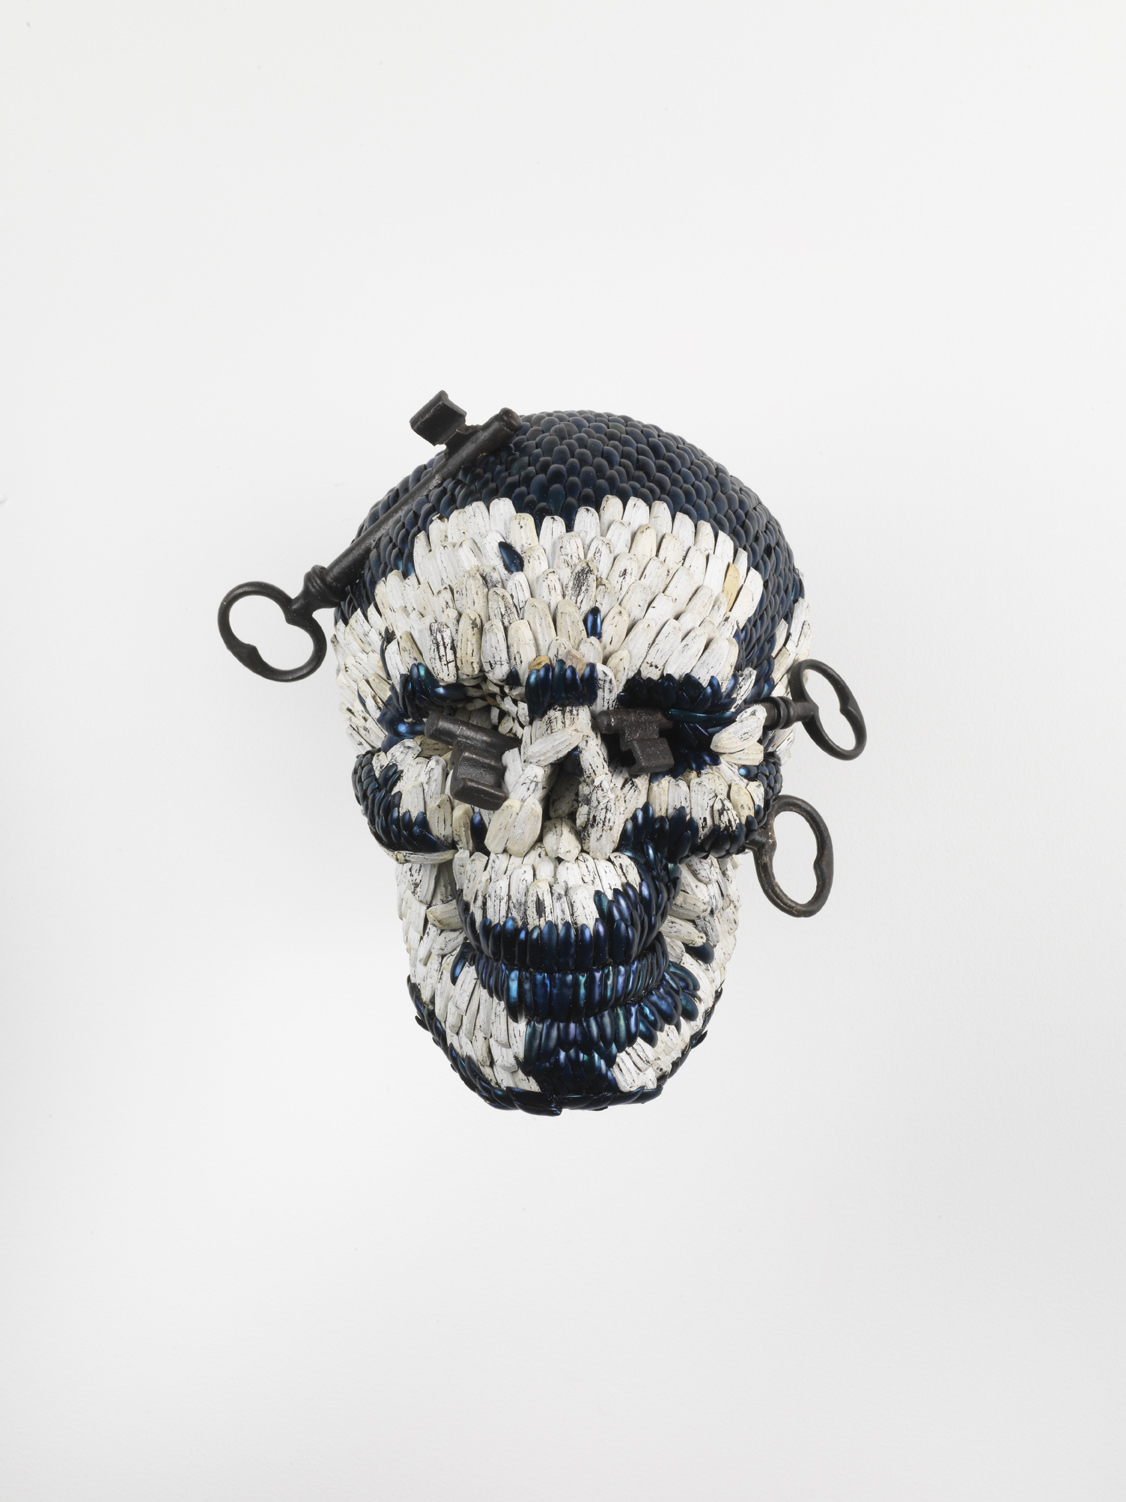 Jan Fabre, Skull with the Keys of Hell, 2013, Mixture of jewel beetle wing-cases, polymers, iron, 23 x 21 x 20cm